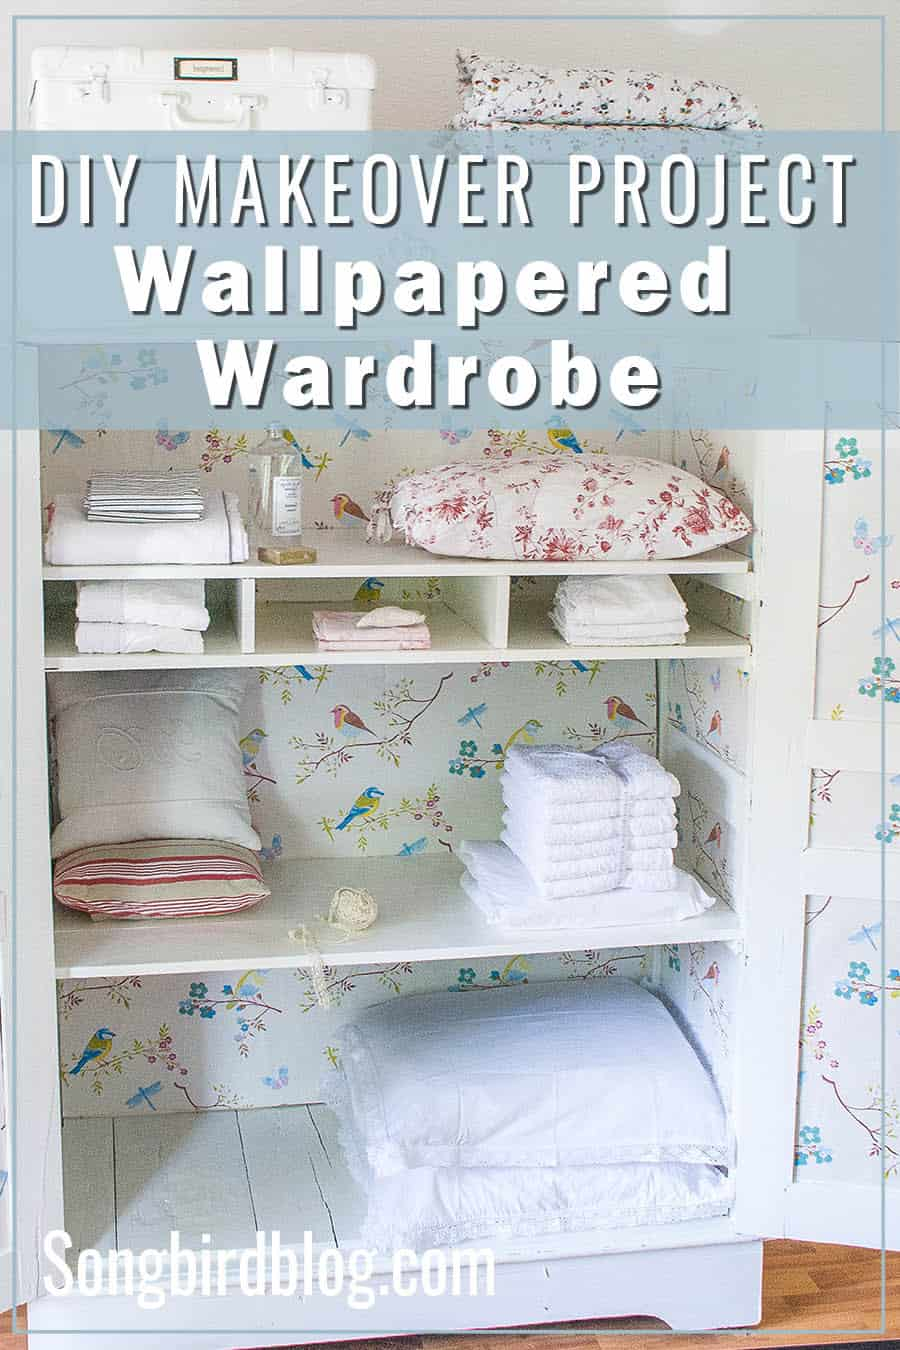 DIY makeover Wardrobe